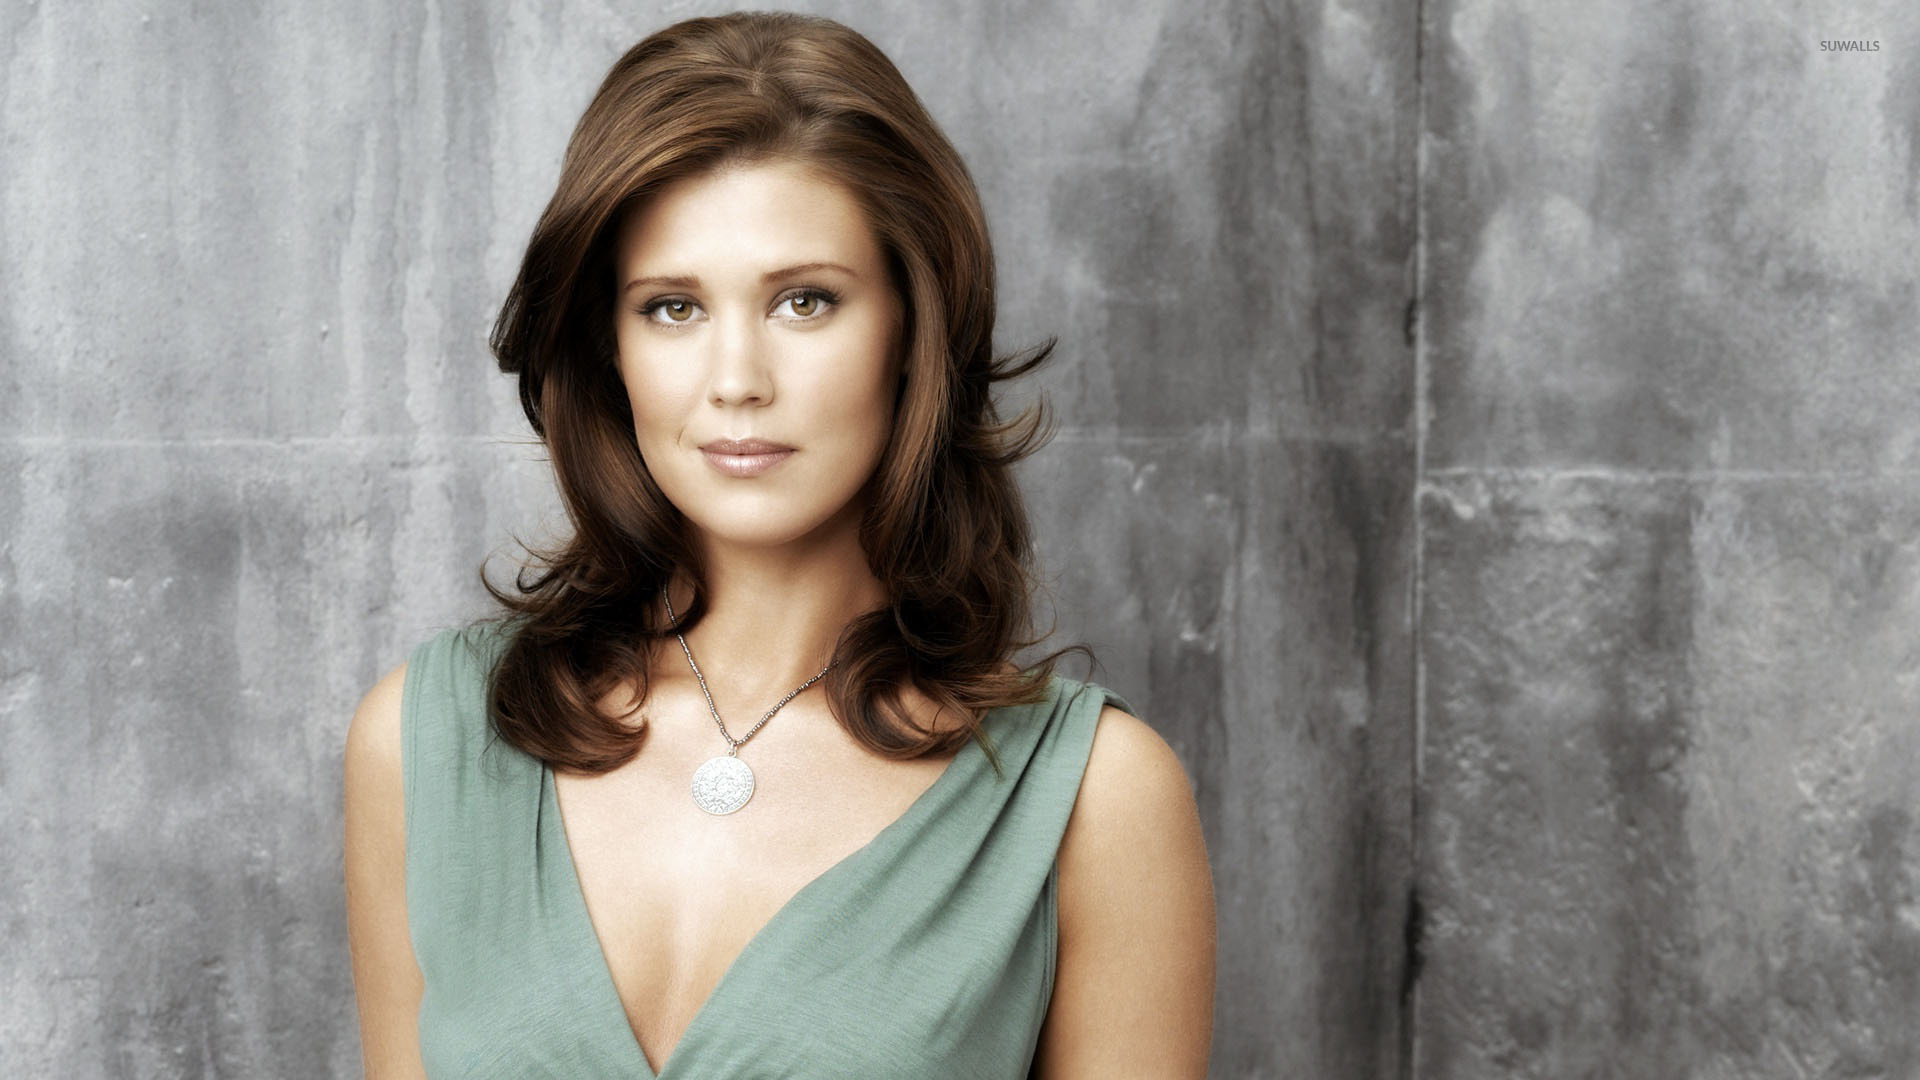 Cute Sarah Lancaster with necklace wallpaper   Celebrity 1920x1080